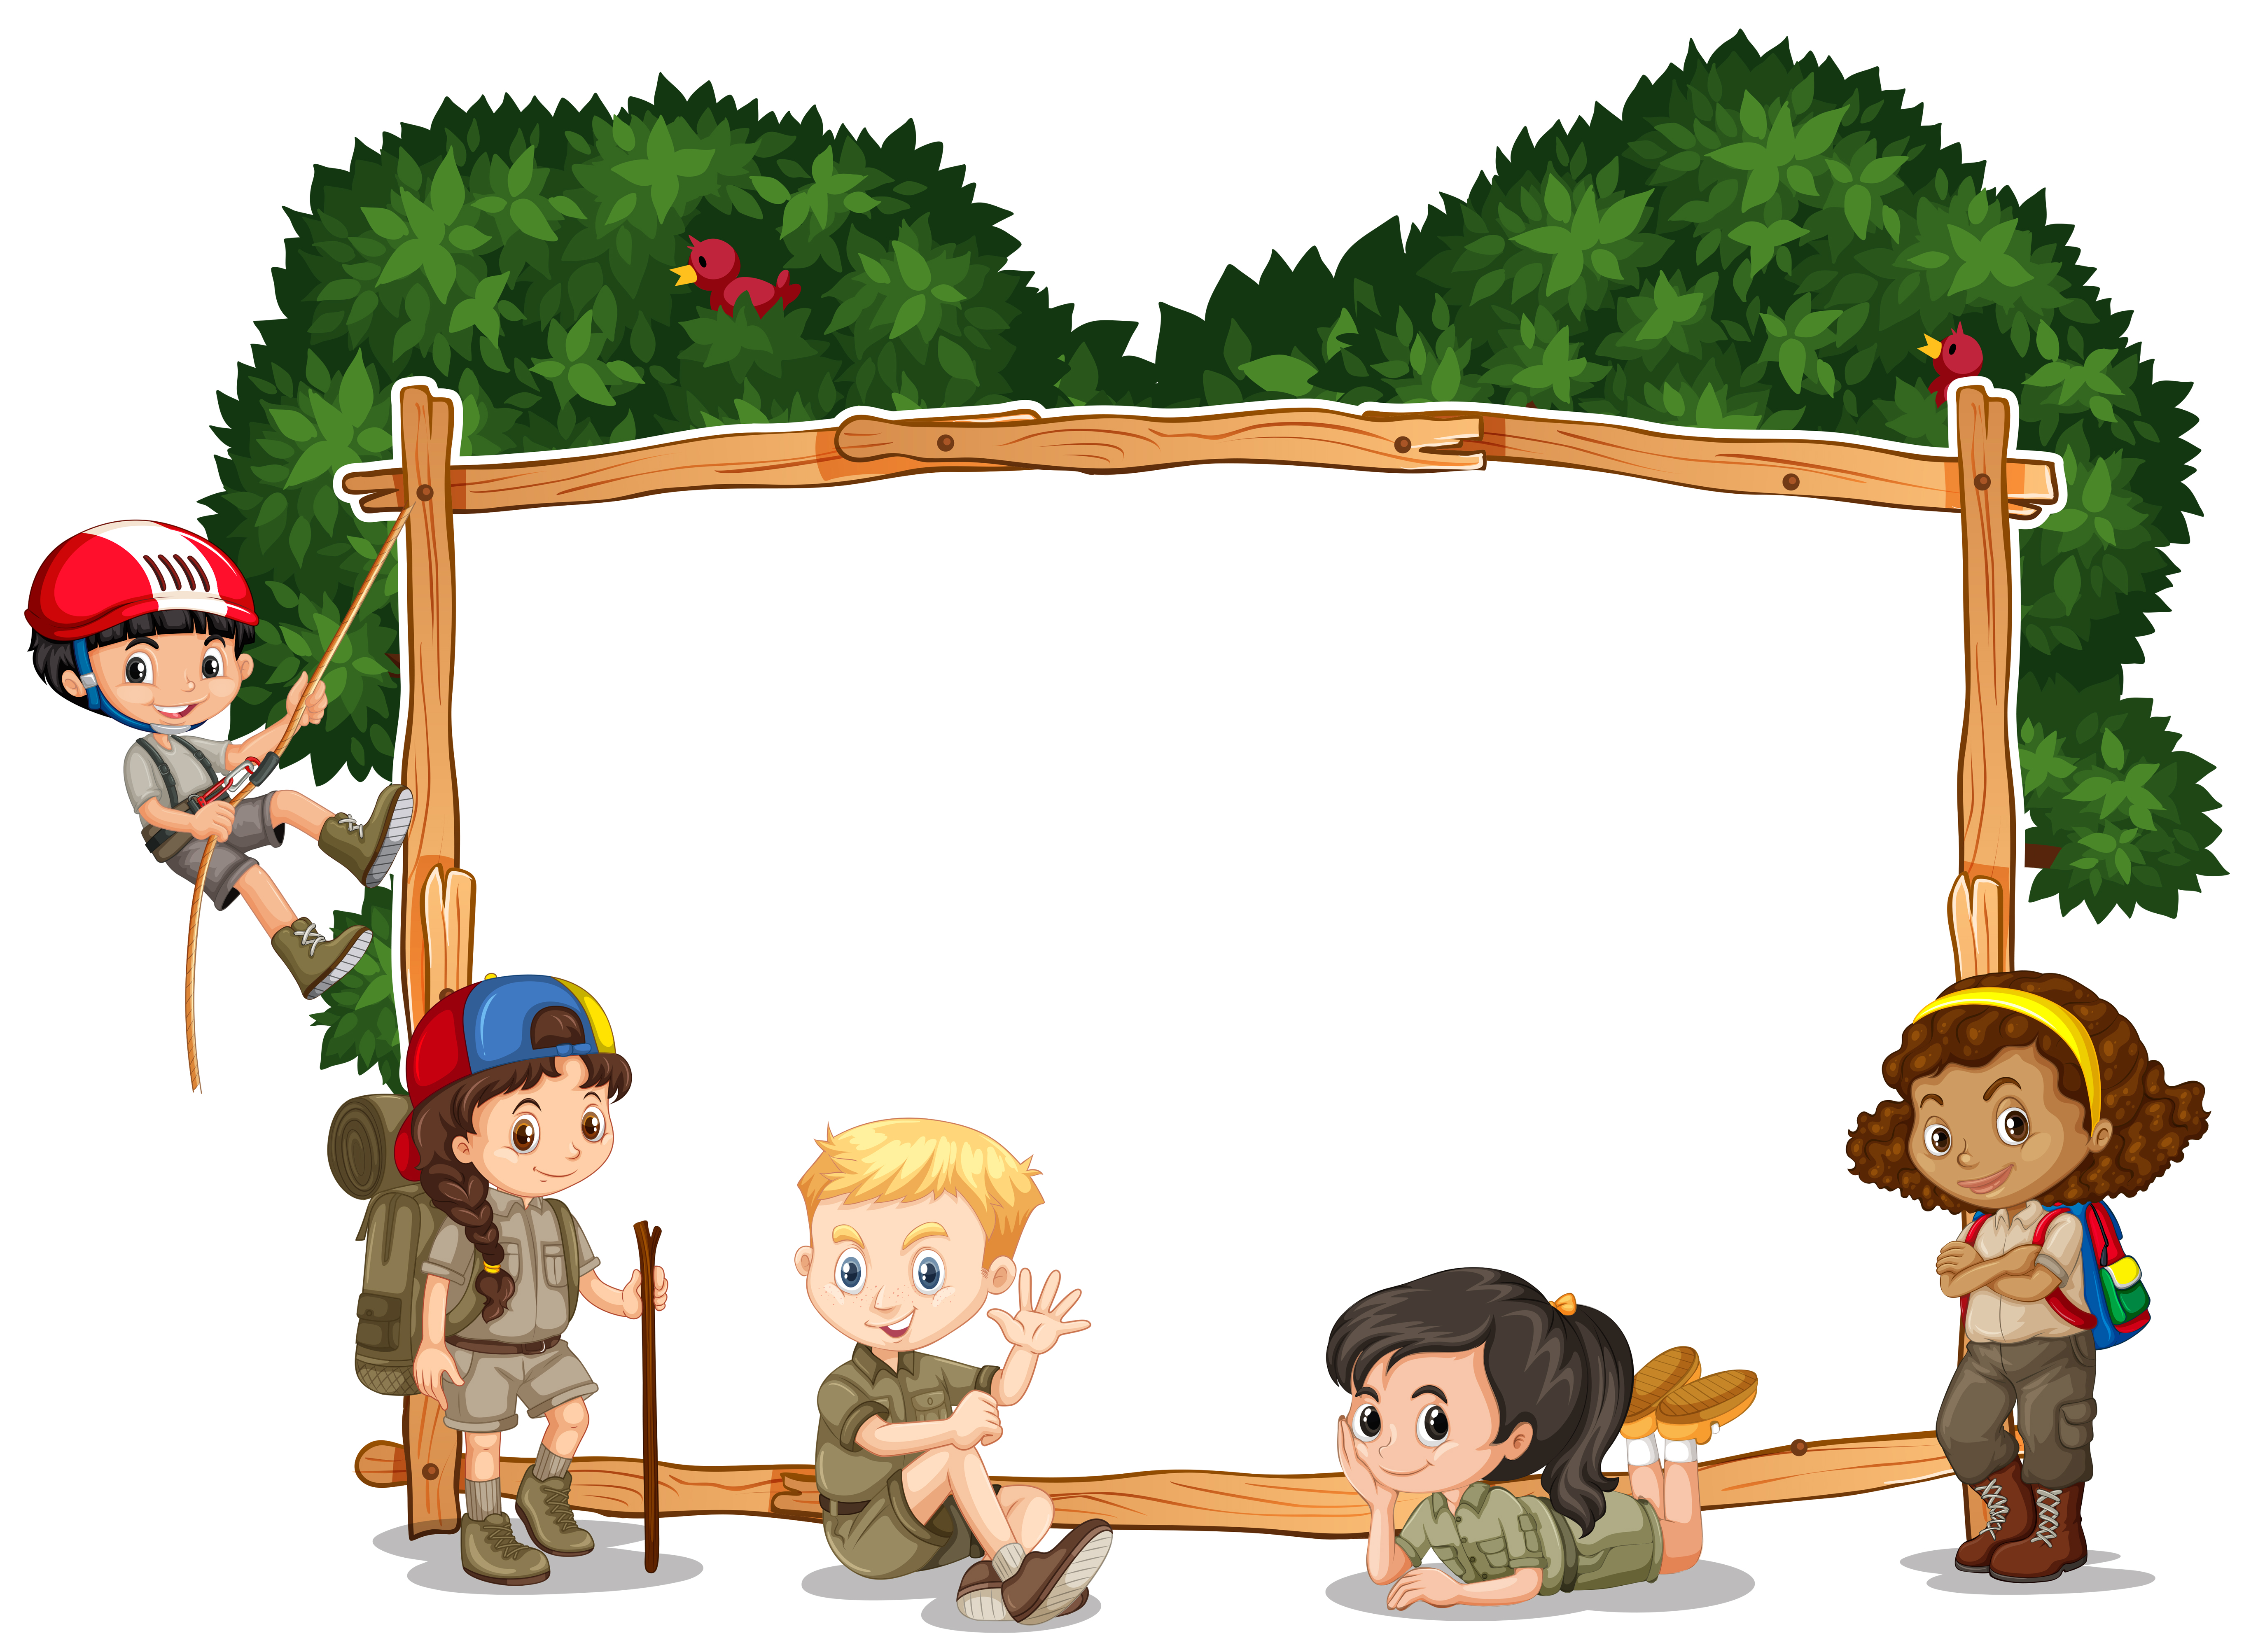 Frame Template With Kids Camping In Background Download Free Vectors Clipart Graphics Vector Art